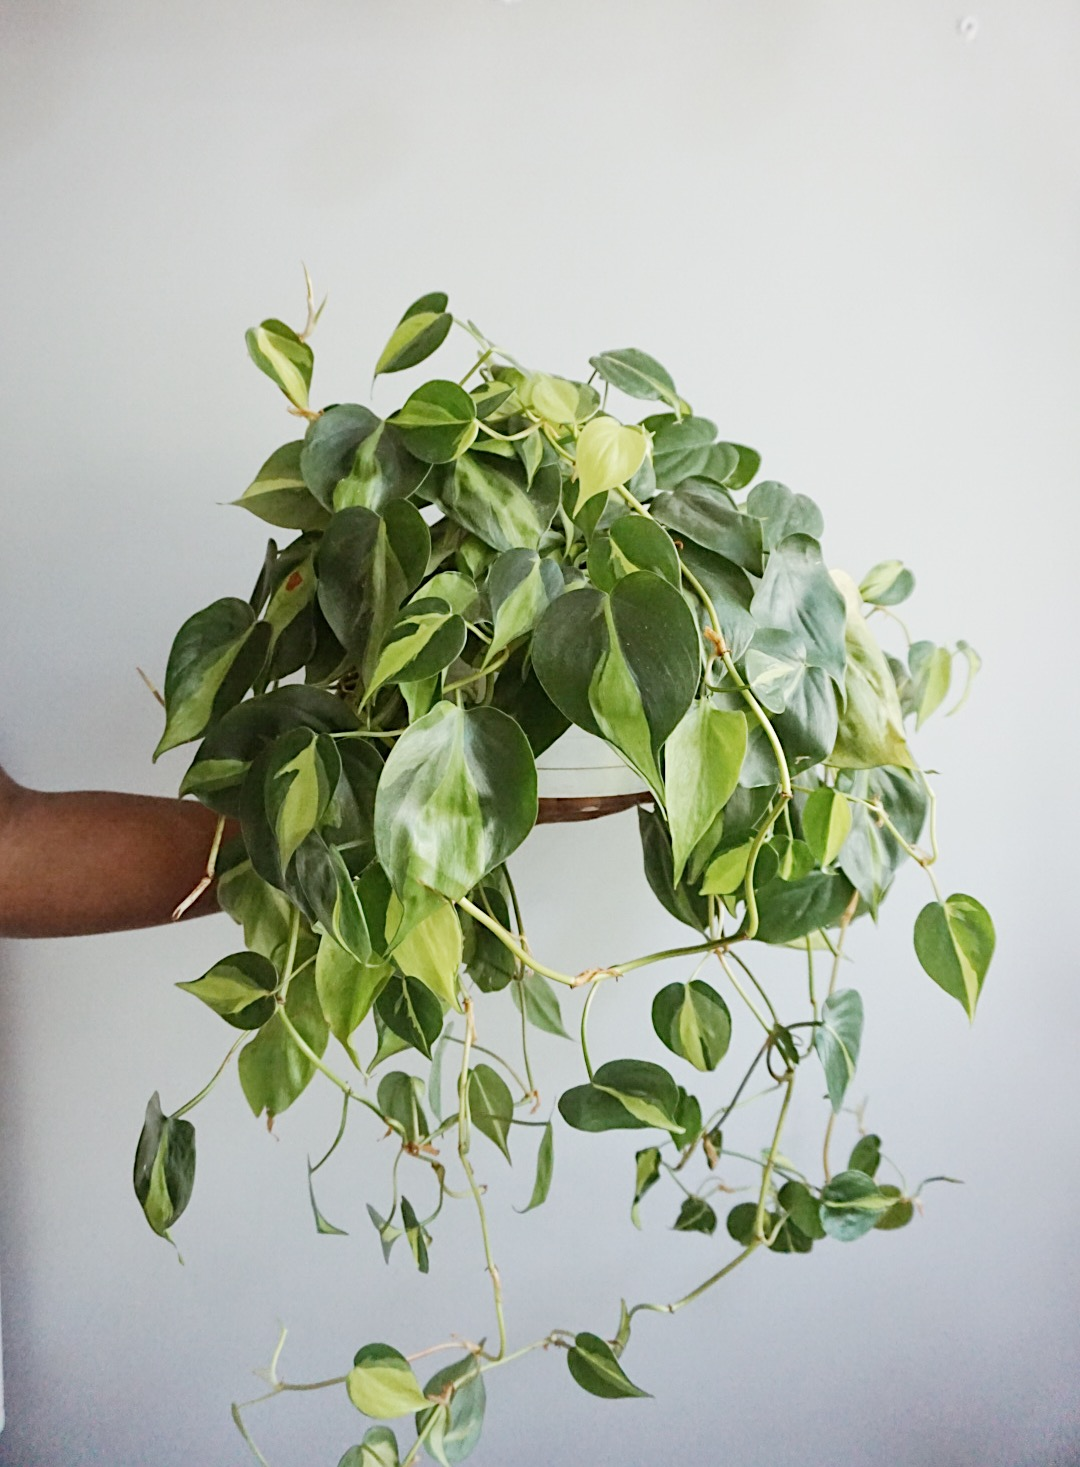 philodendron easy beginner plant